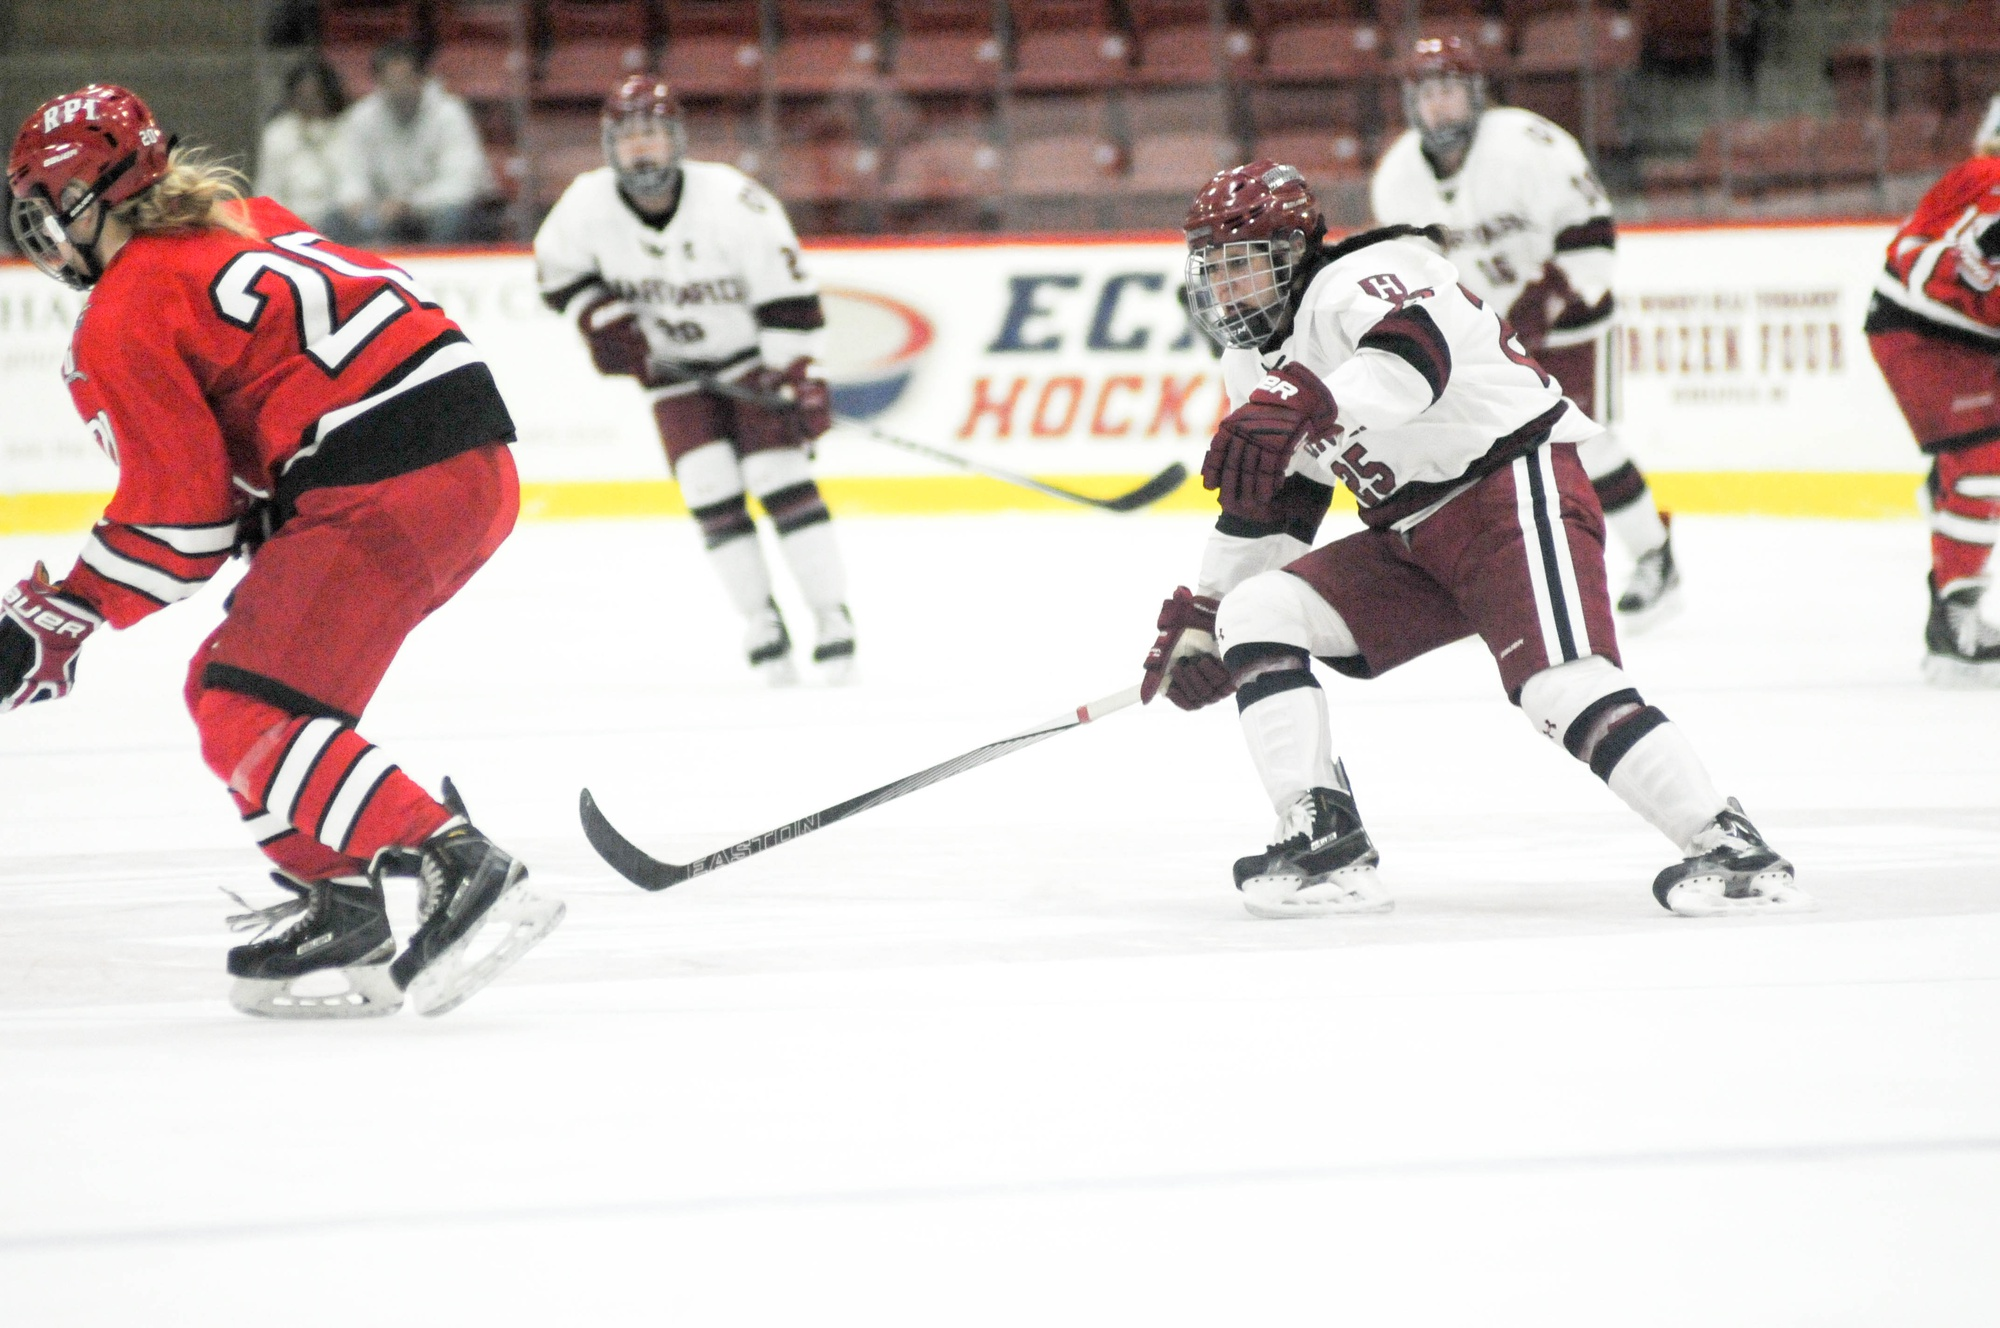 Junior forward Sydney Daniels, shown here in previous action, notched a goal in Harvard's 3-0 victory over Northeastern Tuesday night.